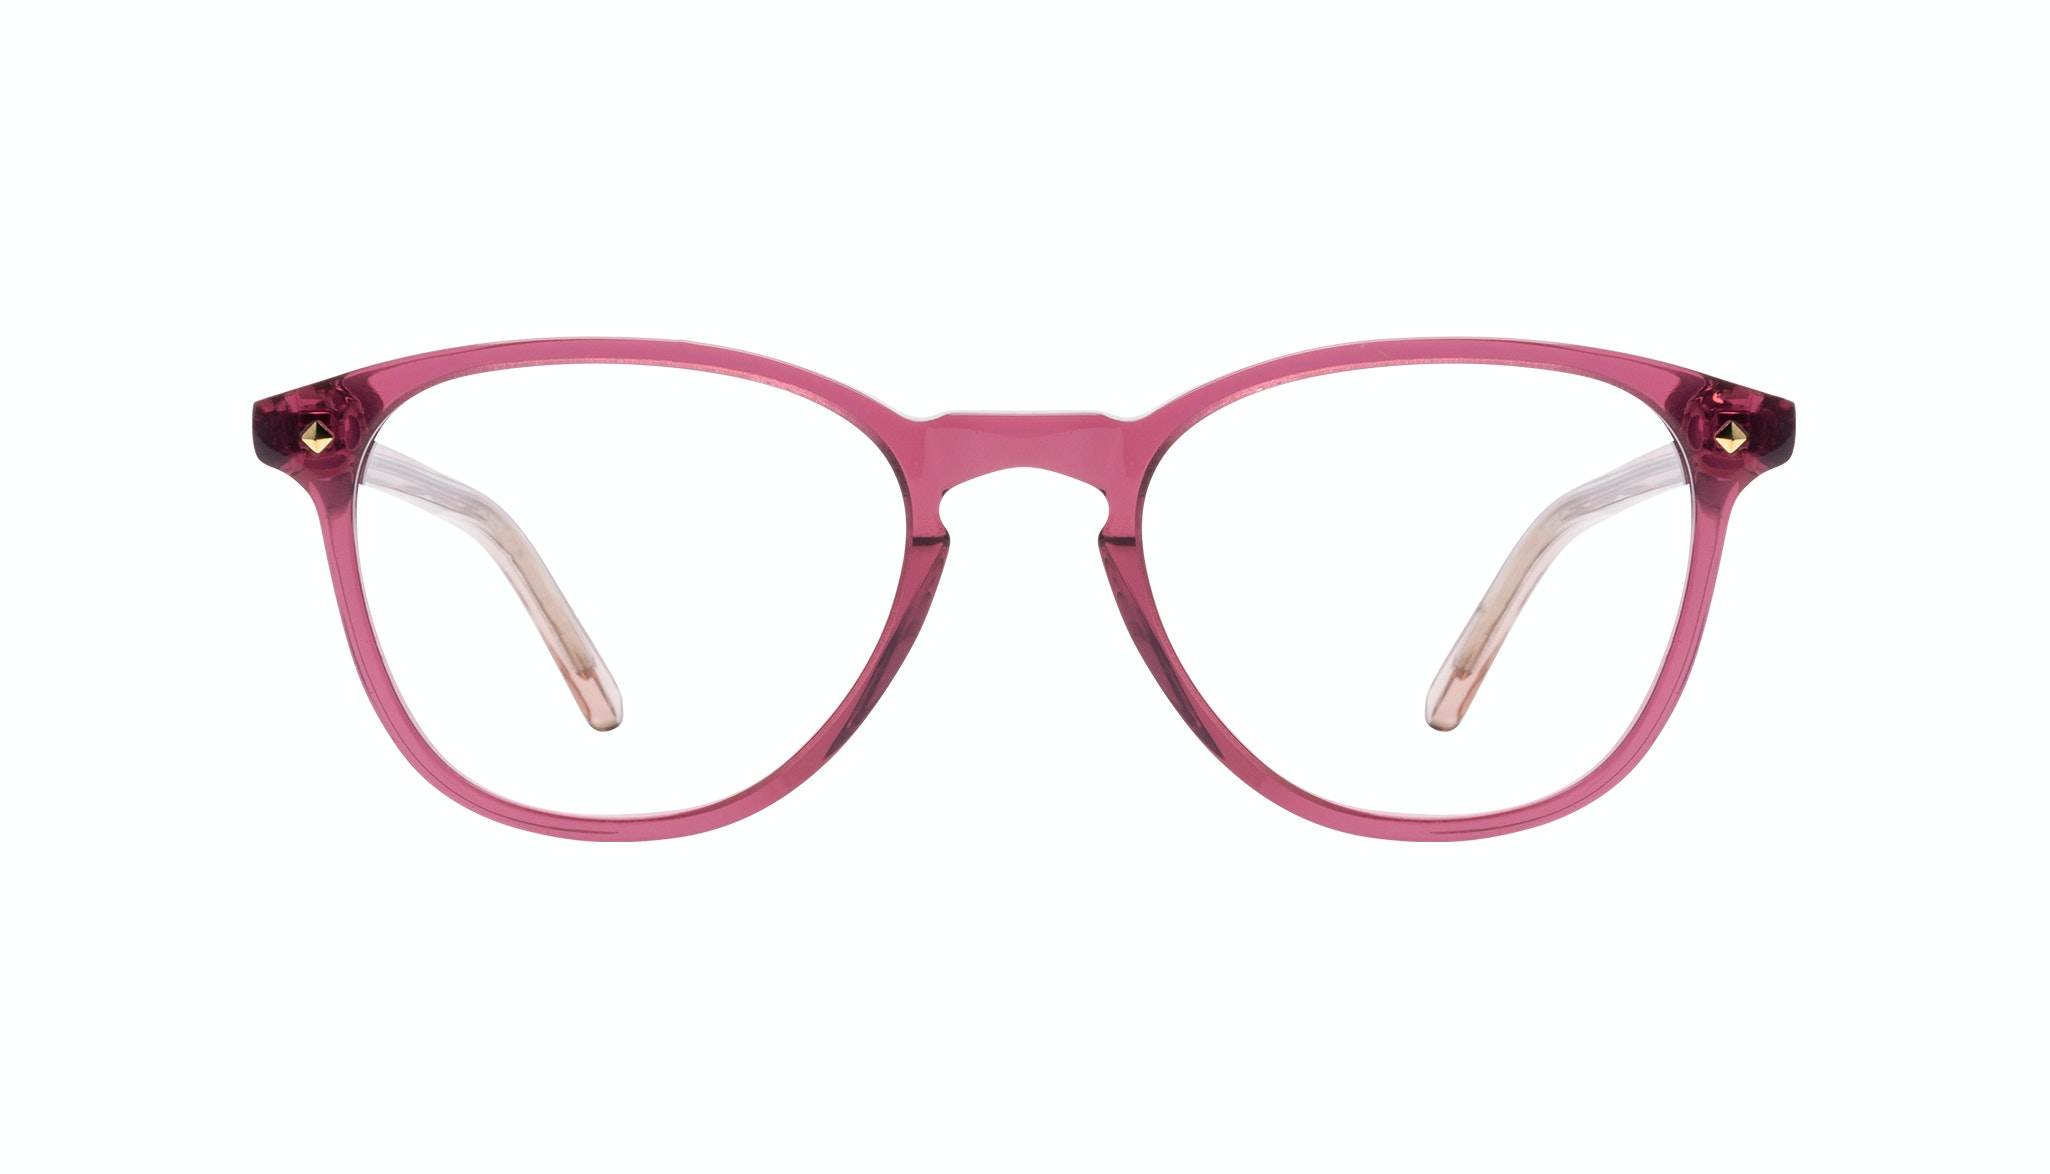 Affordable Fashion Glasses Round Eyeglasses Women Crush Berry Front